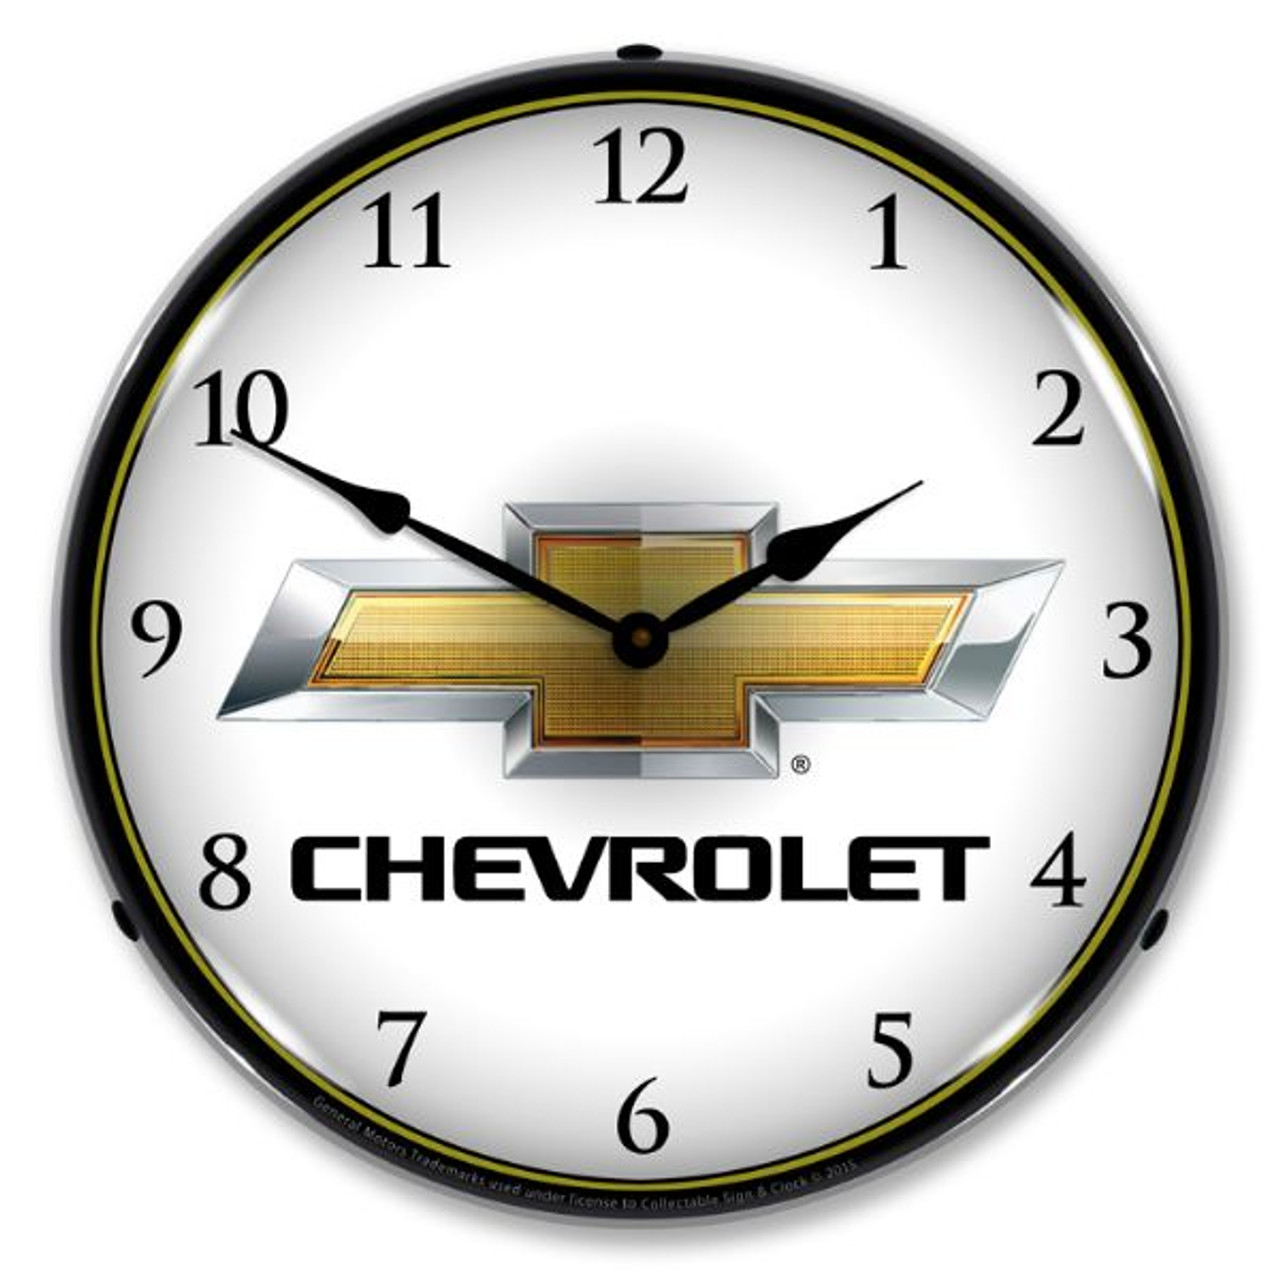 Chevrolet Bowtie Lighted Wall Clock 14 x 14 Inches